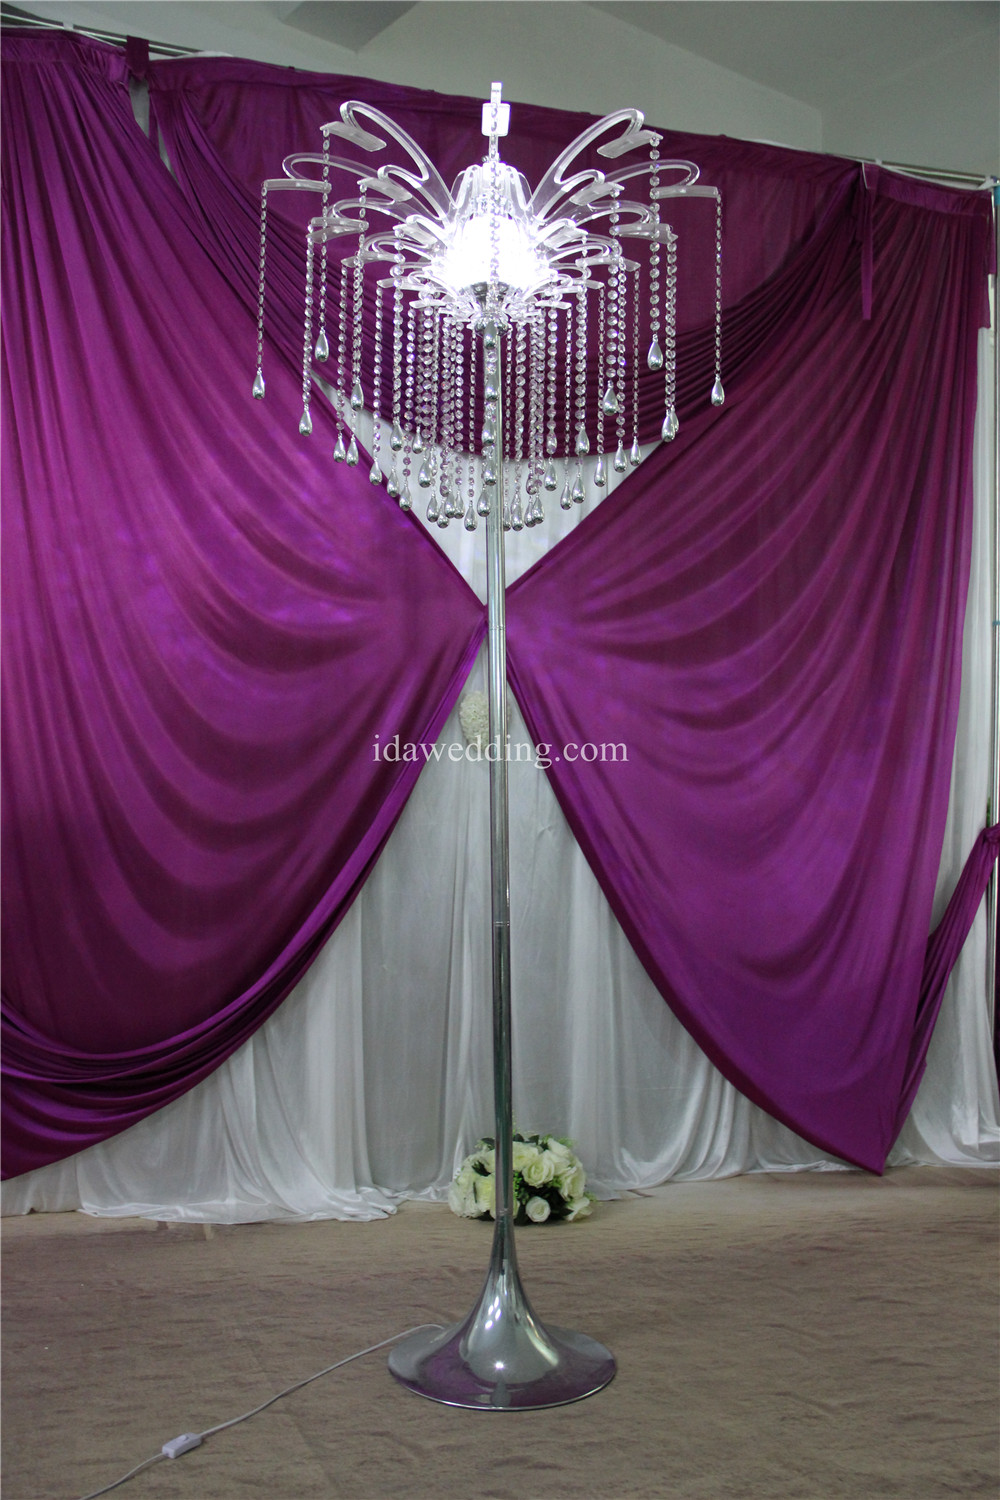 High Quality Pillar Decoration For Wedding With Crystal Beads